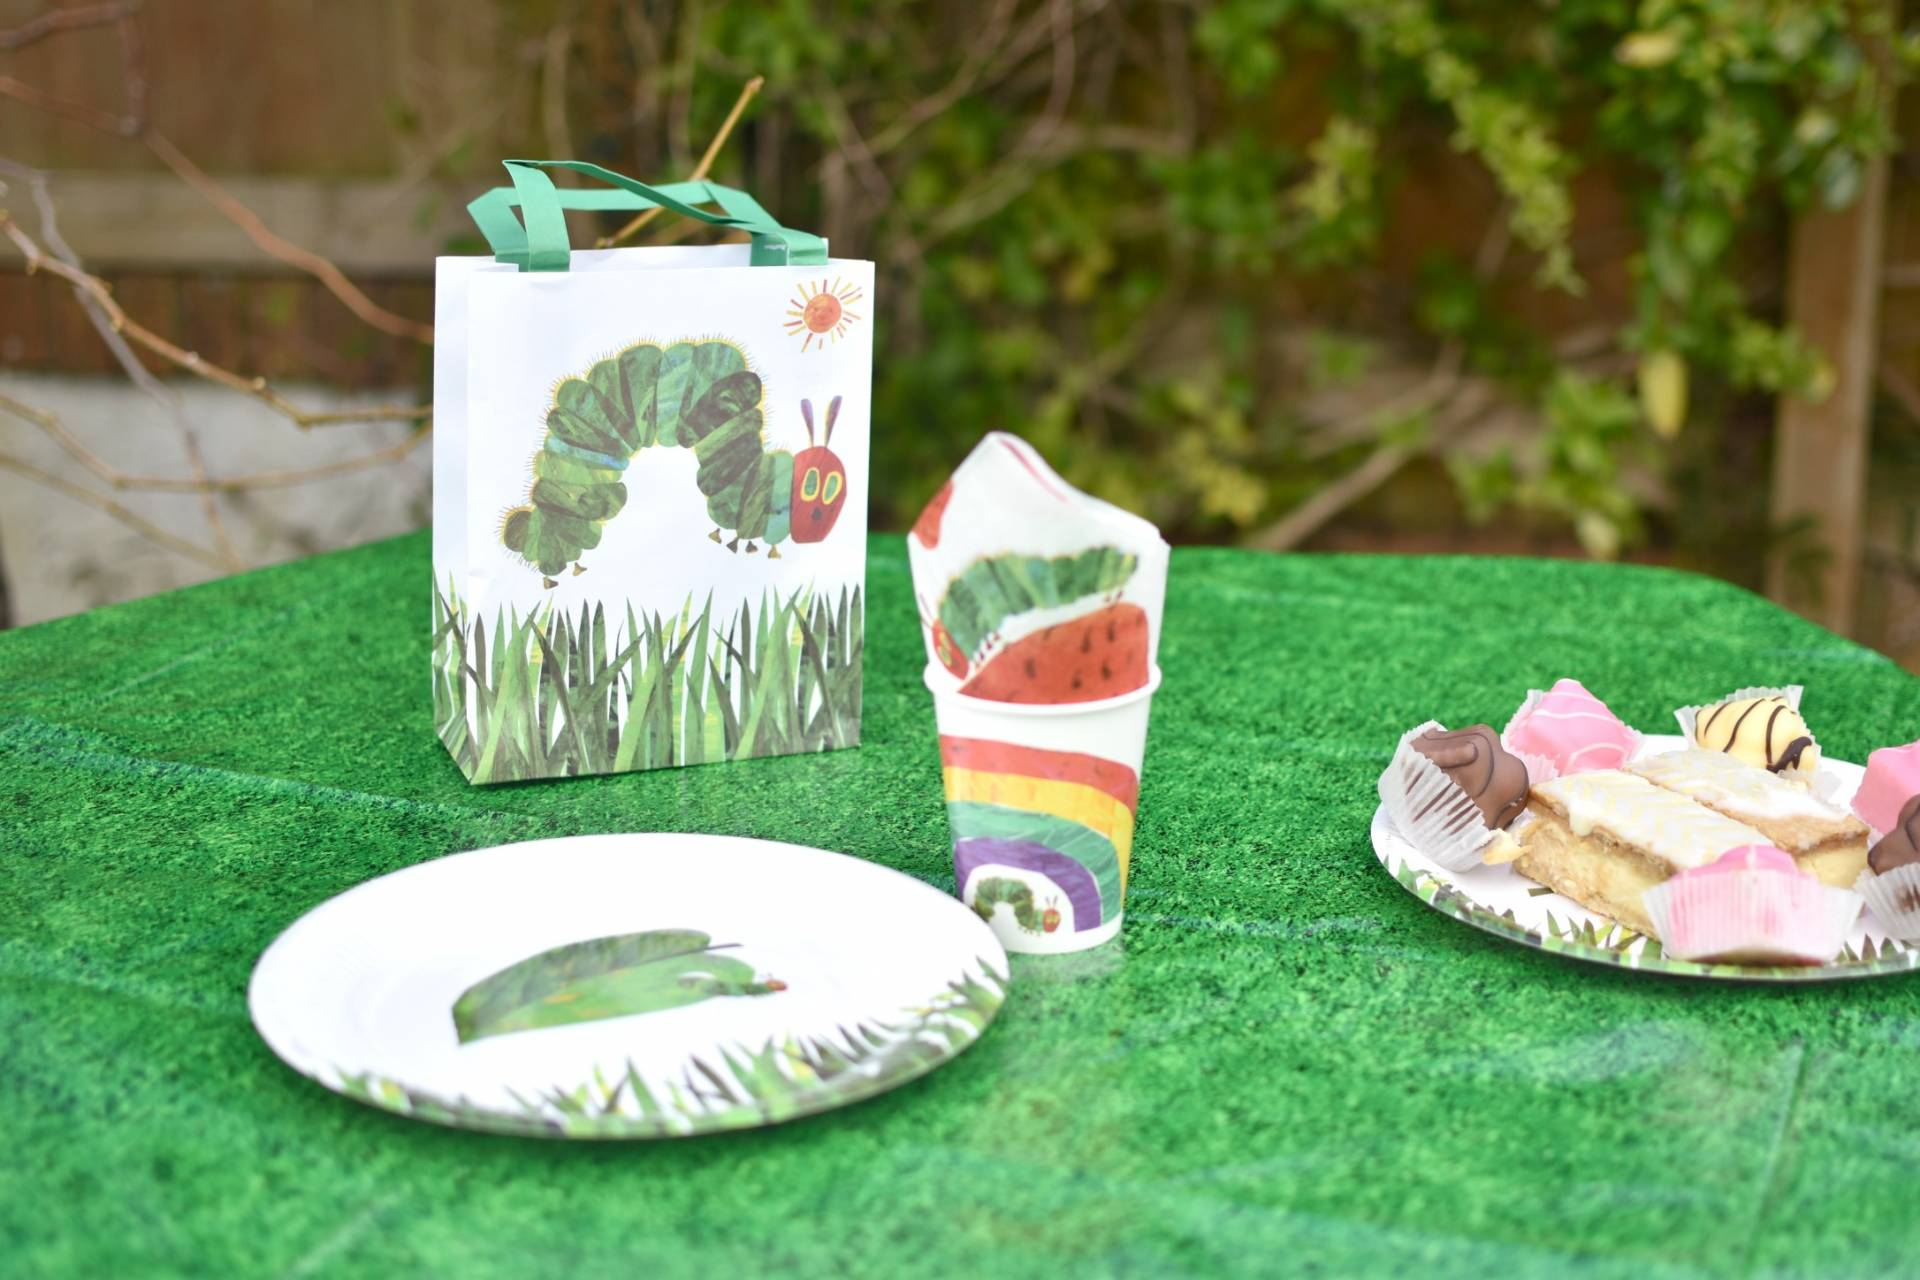 The Very Hungry Caterpillar themed party for toddlers